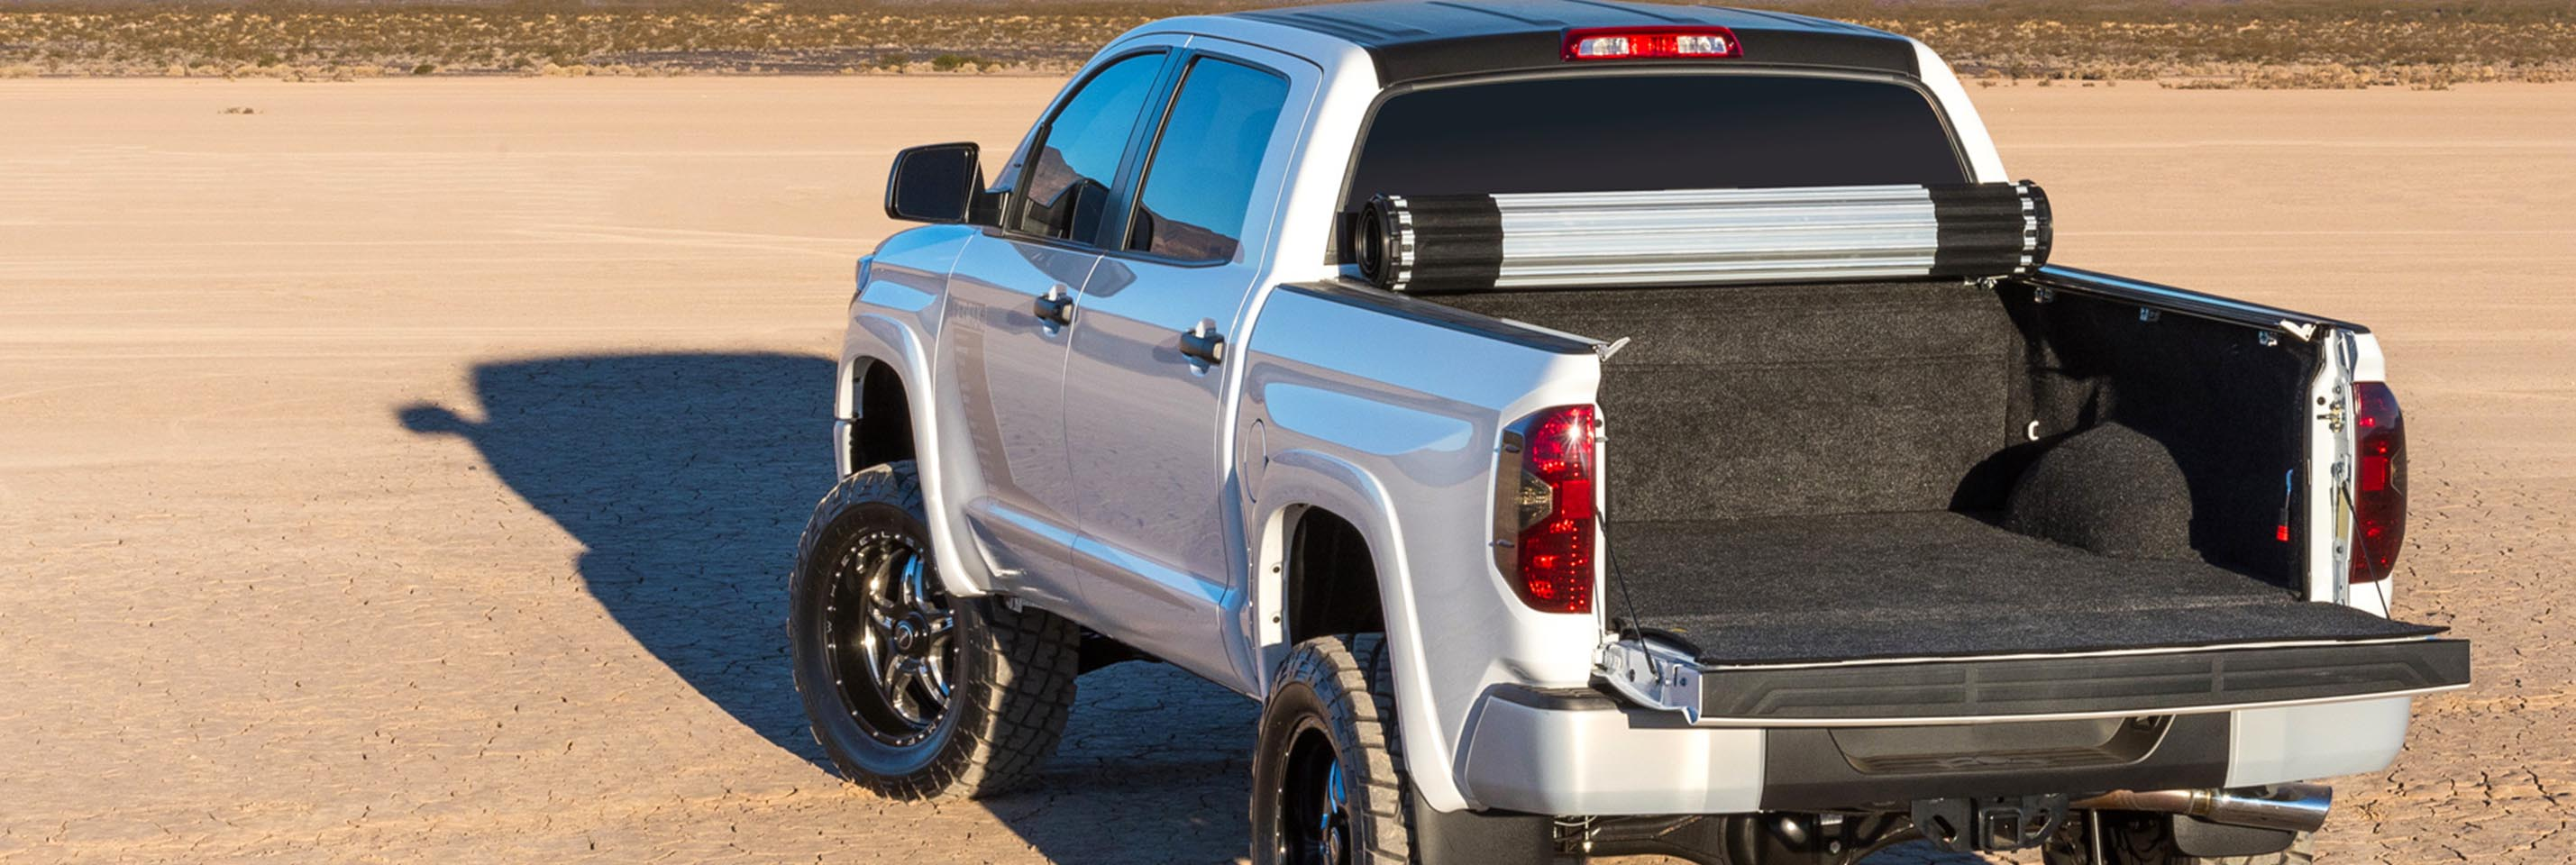 Best Tonneau Covers For Toyota Tundra Customer Top Picks